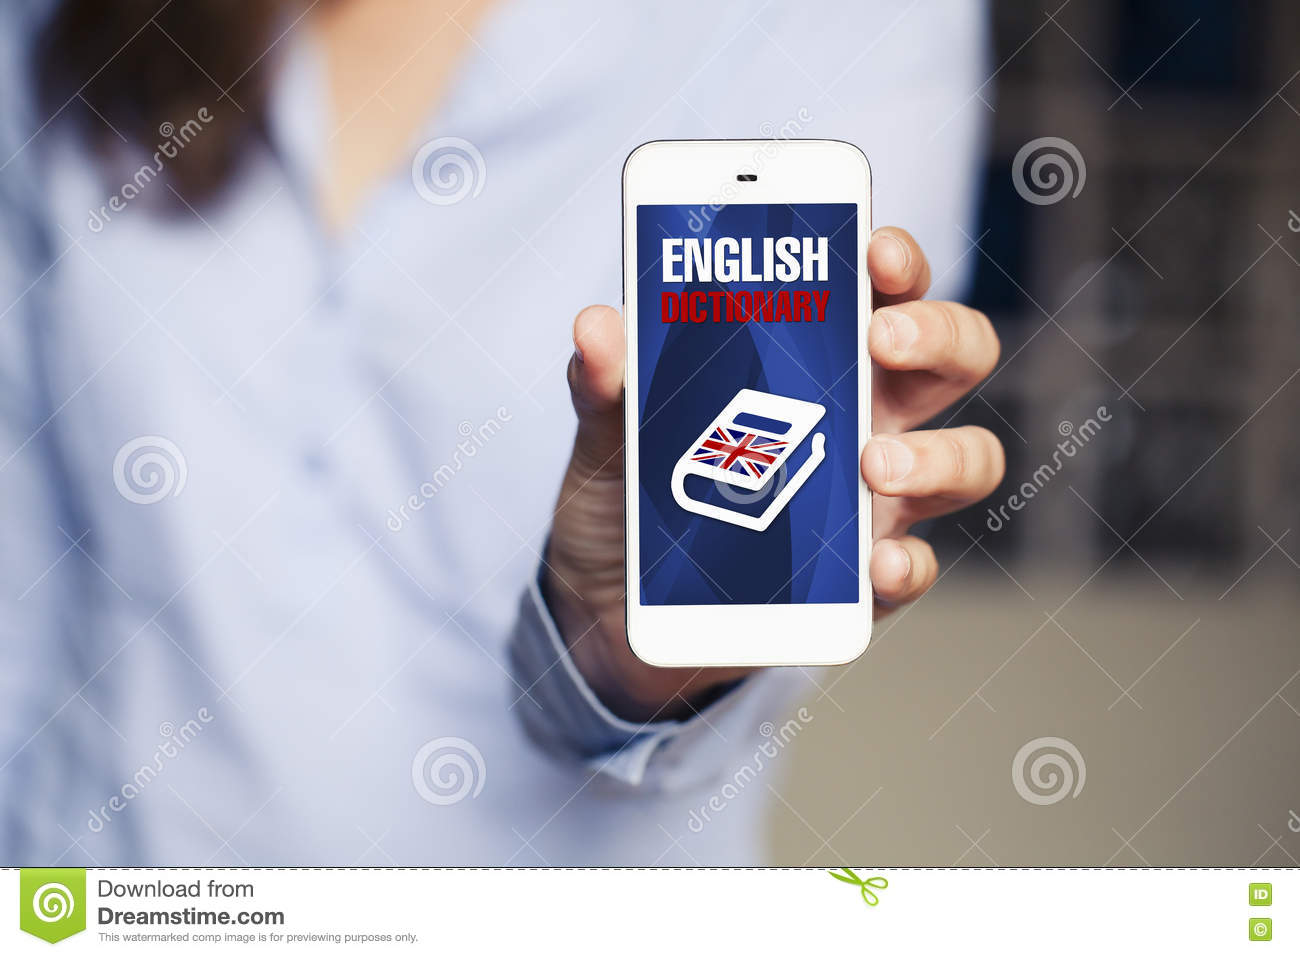 Download oxford dictionary english android apps apk 3074062.